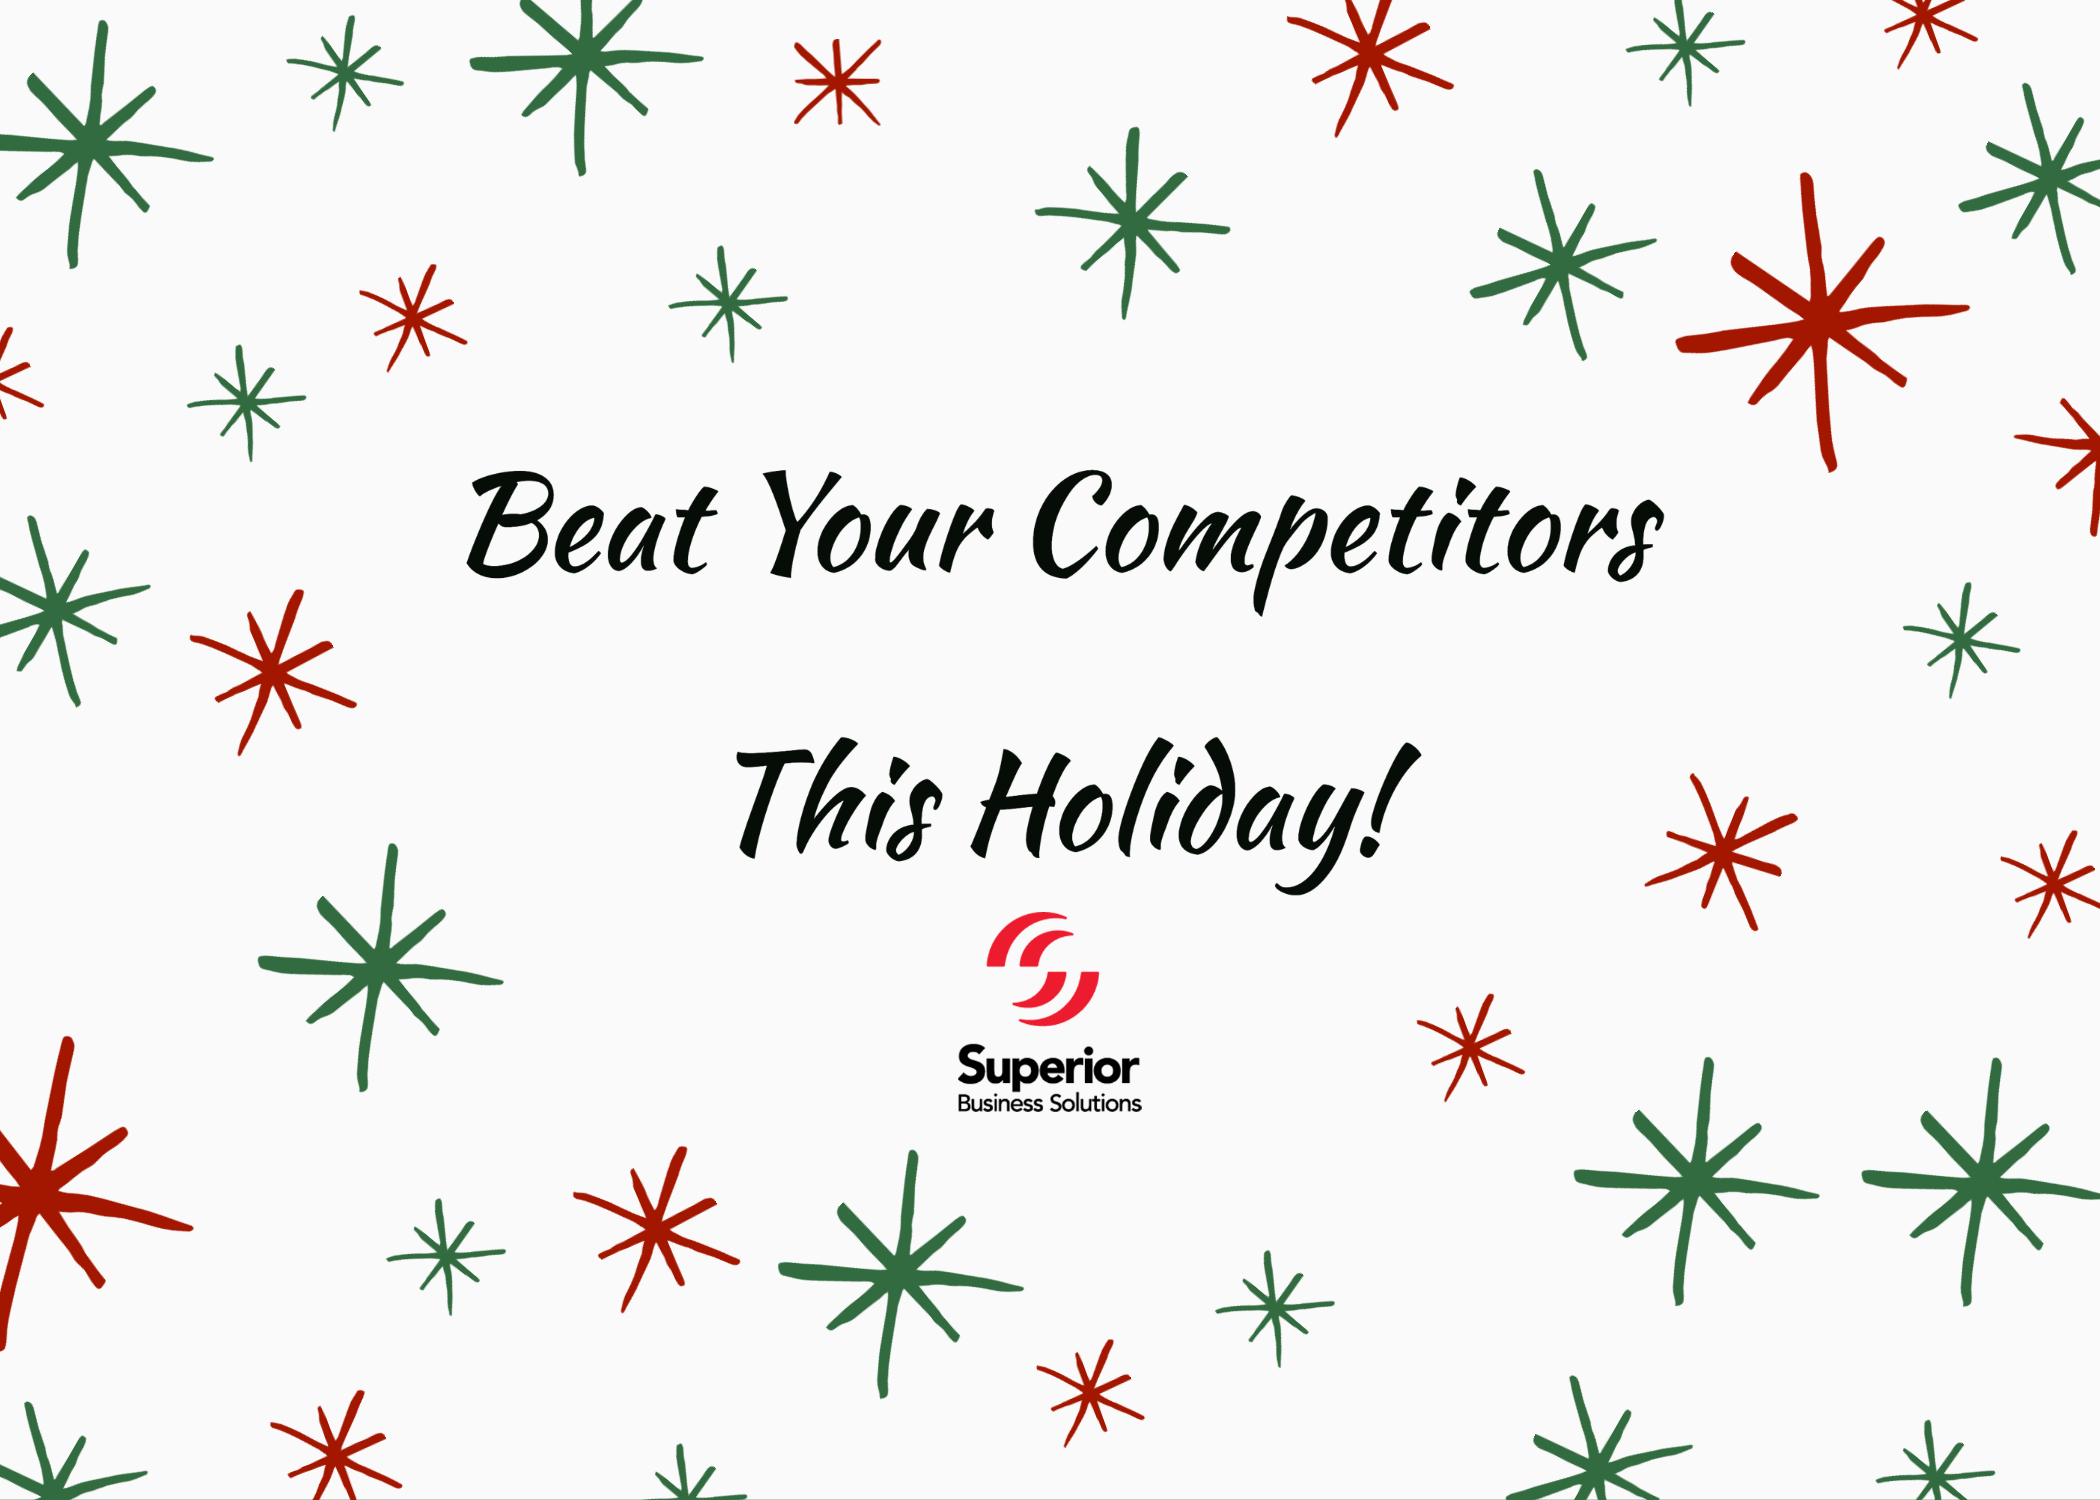 Here's How Your Business Can WIN the Holidays this Year!